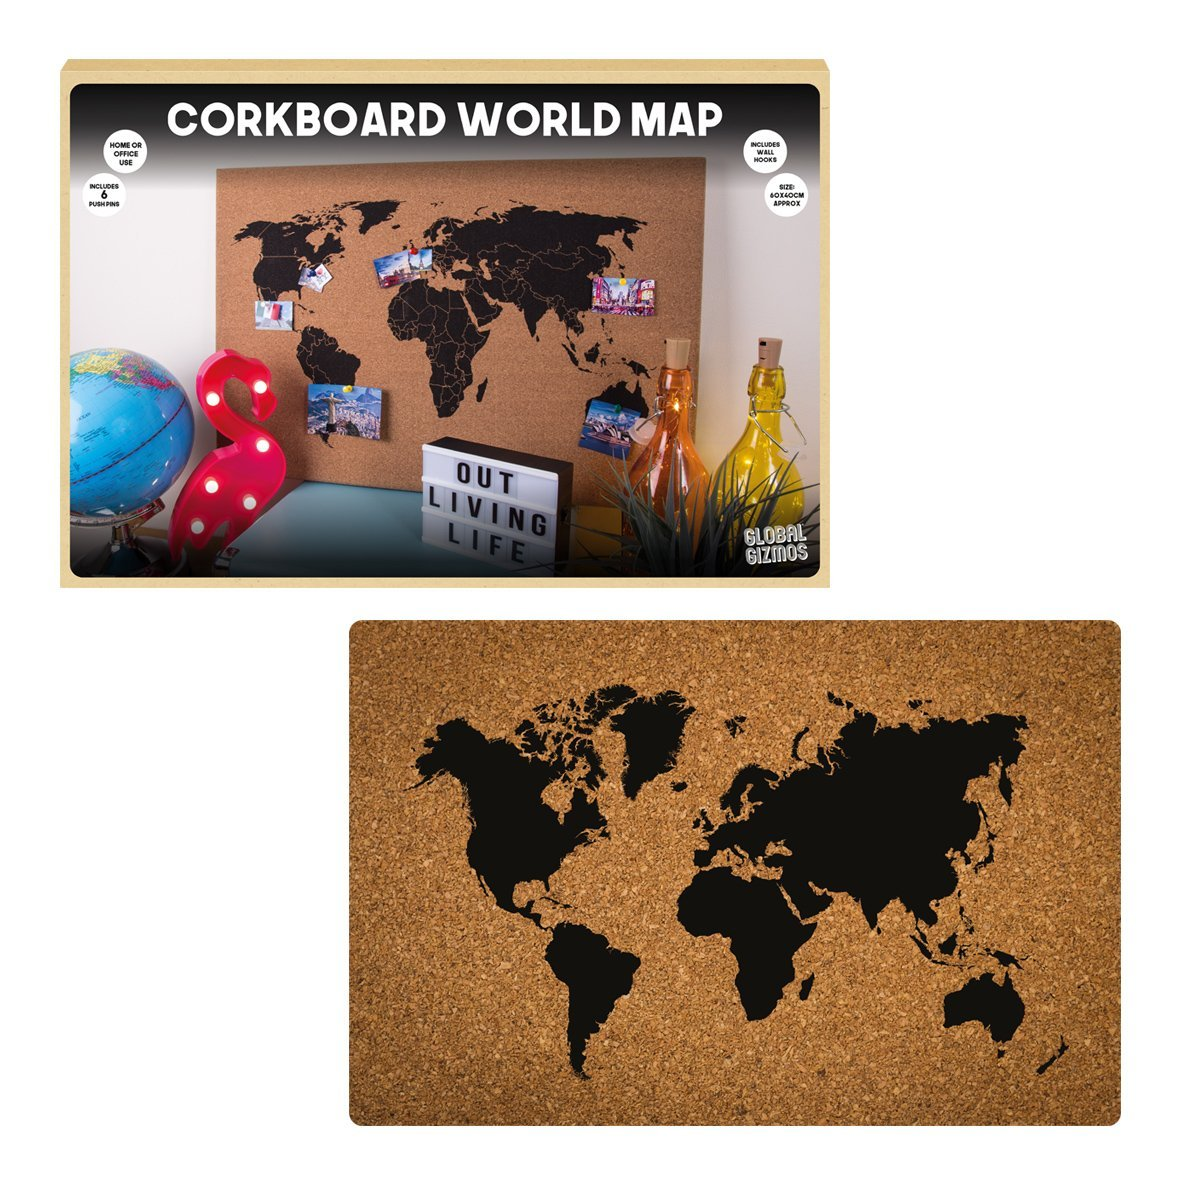 Corkboard world map wall atlas cork memo board including 6 pins corkboard world map wall atlas cork memo board including 6 pins home60 x 40cm gumiabroncs Choice Image